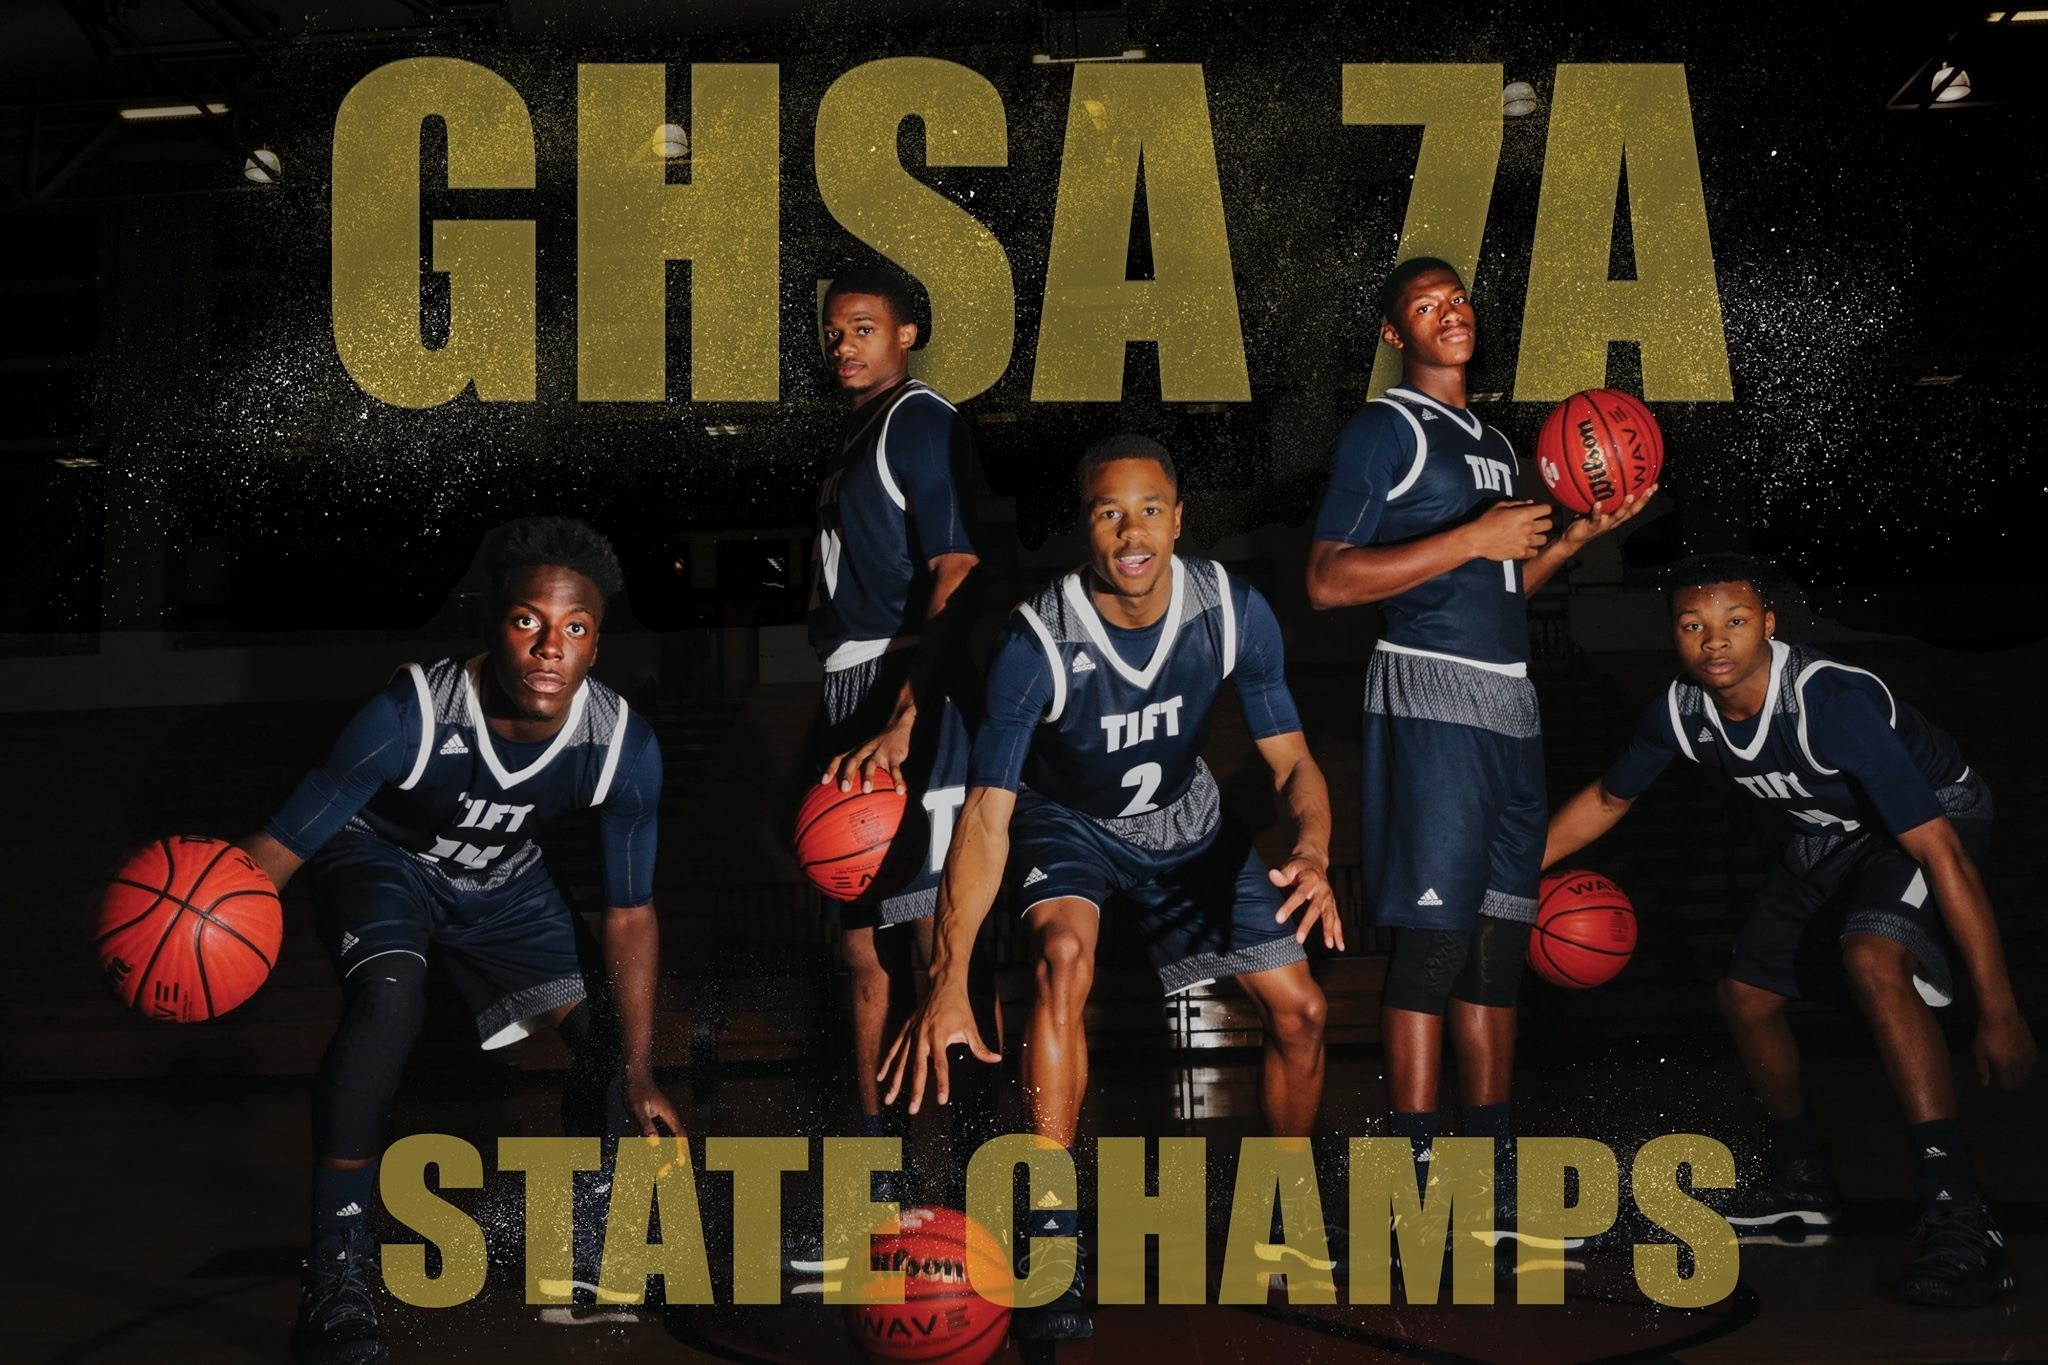 GHSA 7A State Champs Flyer